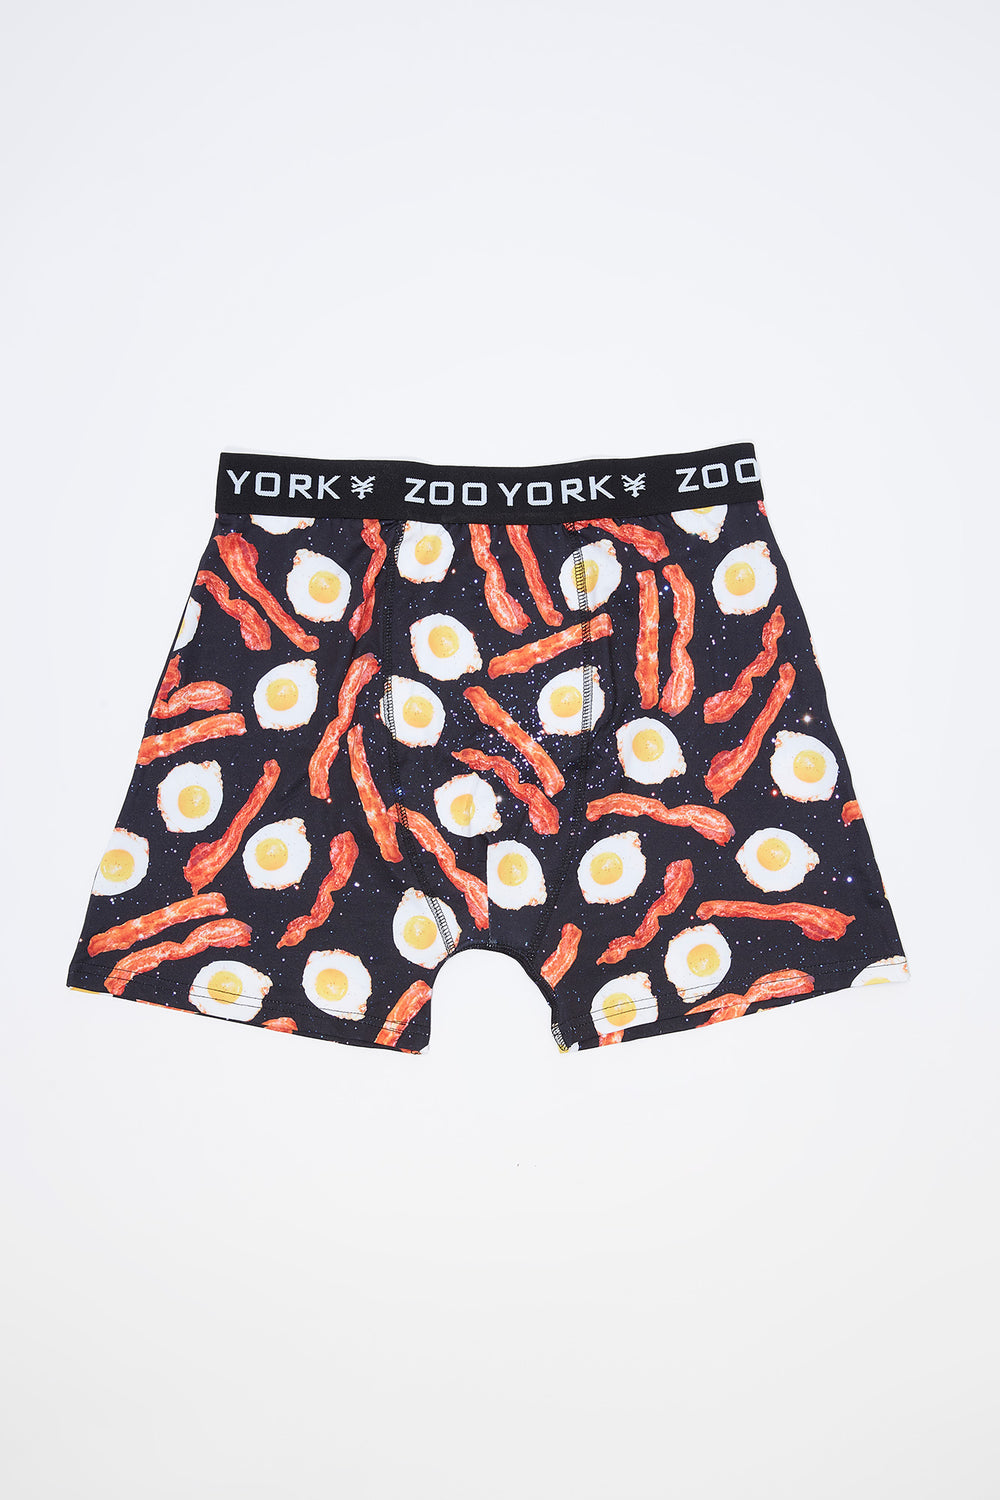 Zoo York Mens Bacon & Eggs Boxer Brief Black with White